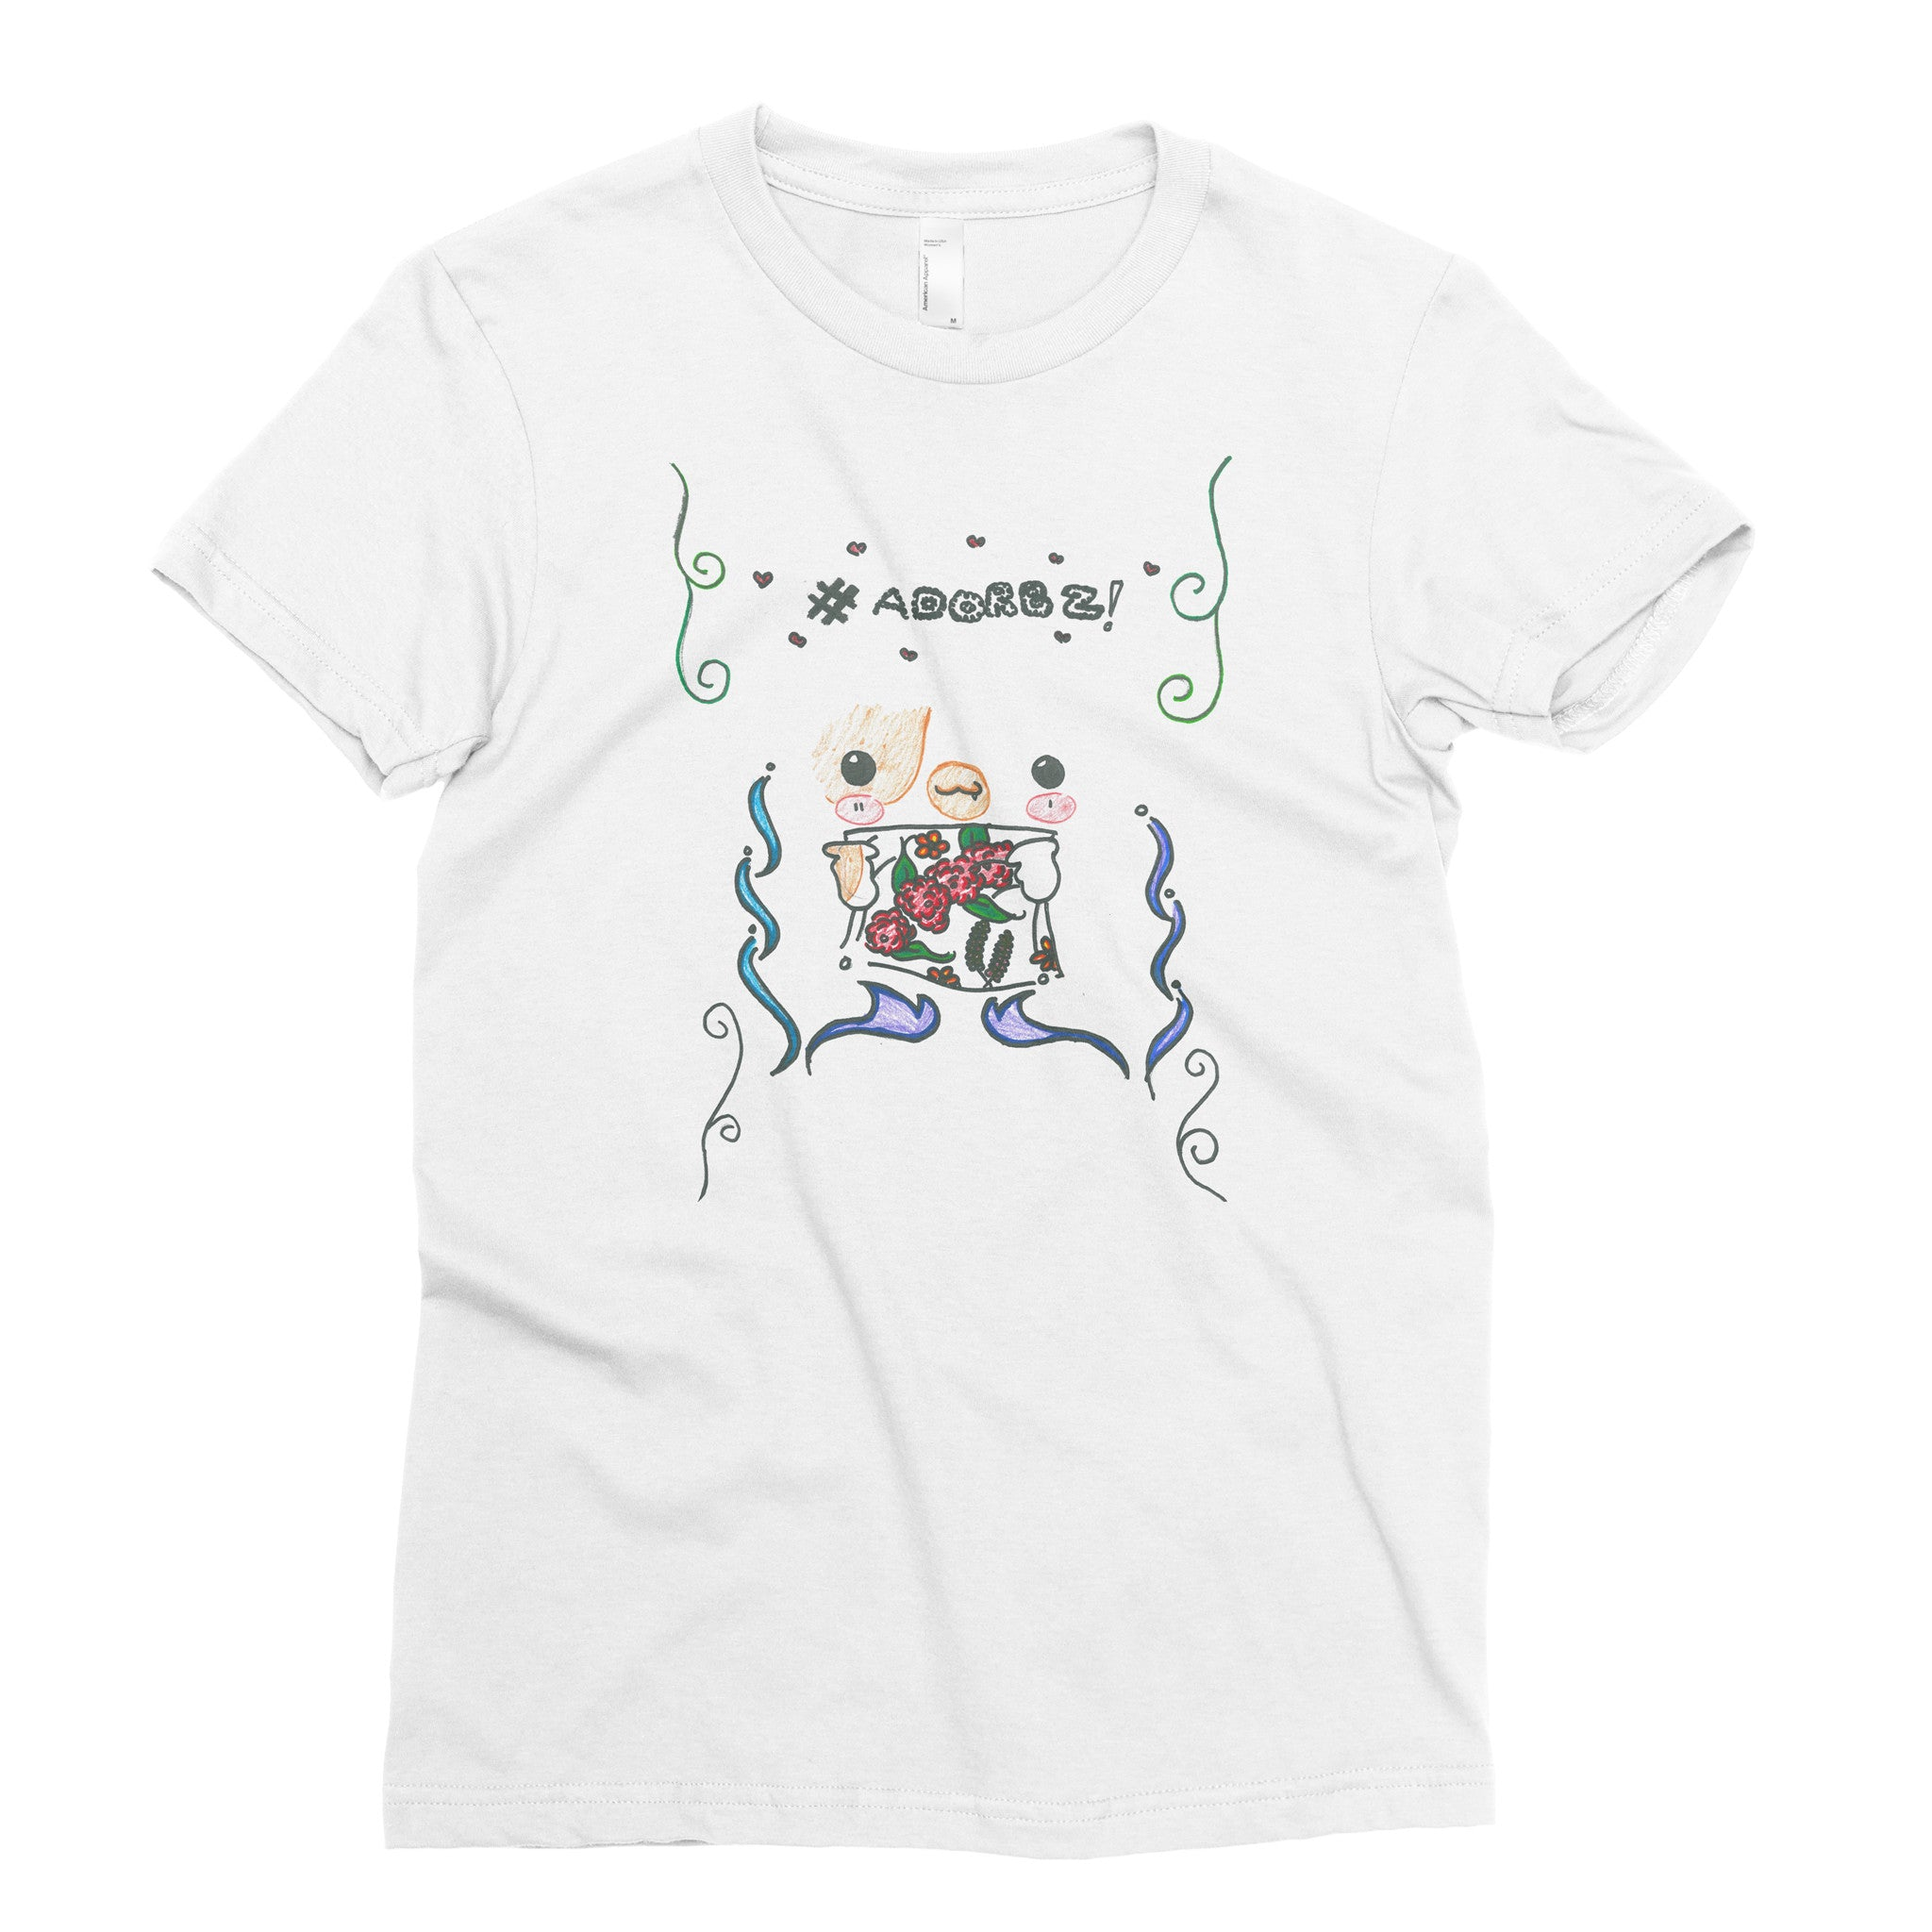 Kami, 7th grade - Adult T-shirt - Rightside Shirts